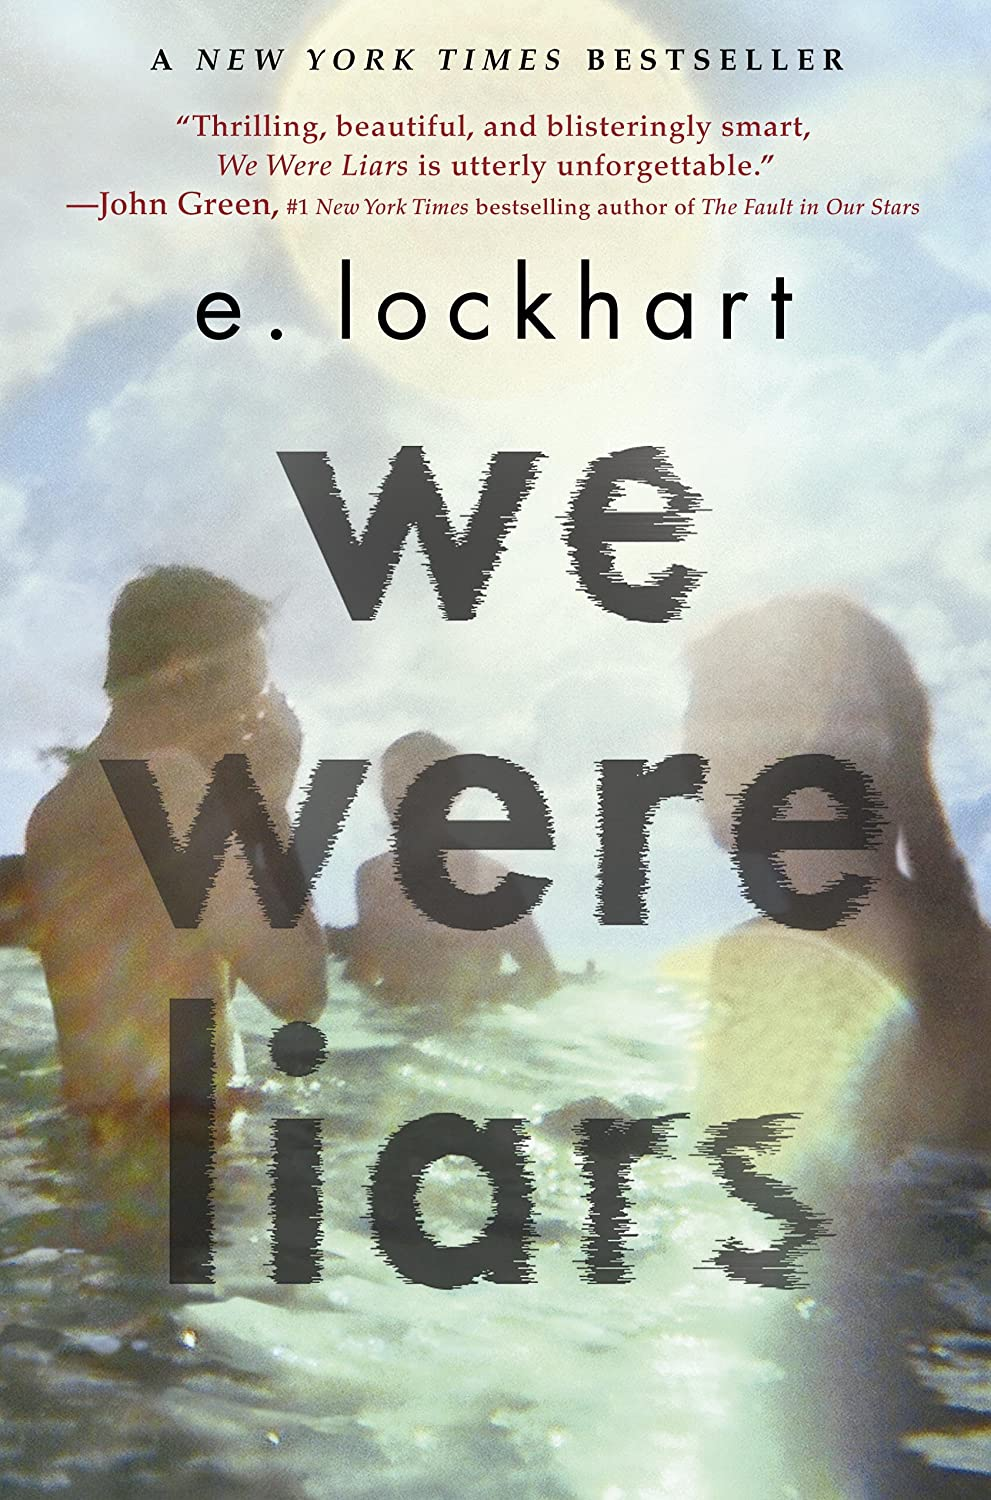 Between The Lines: We Were Liars by E. Lockhart #BookClub